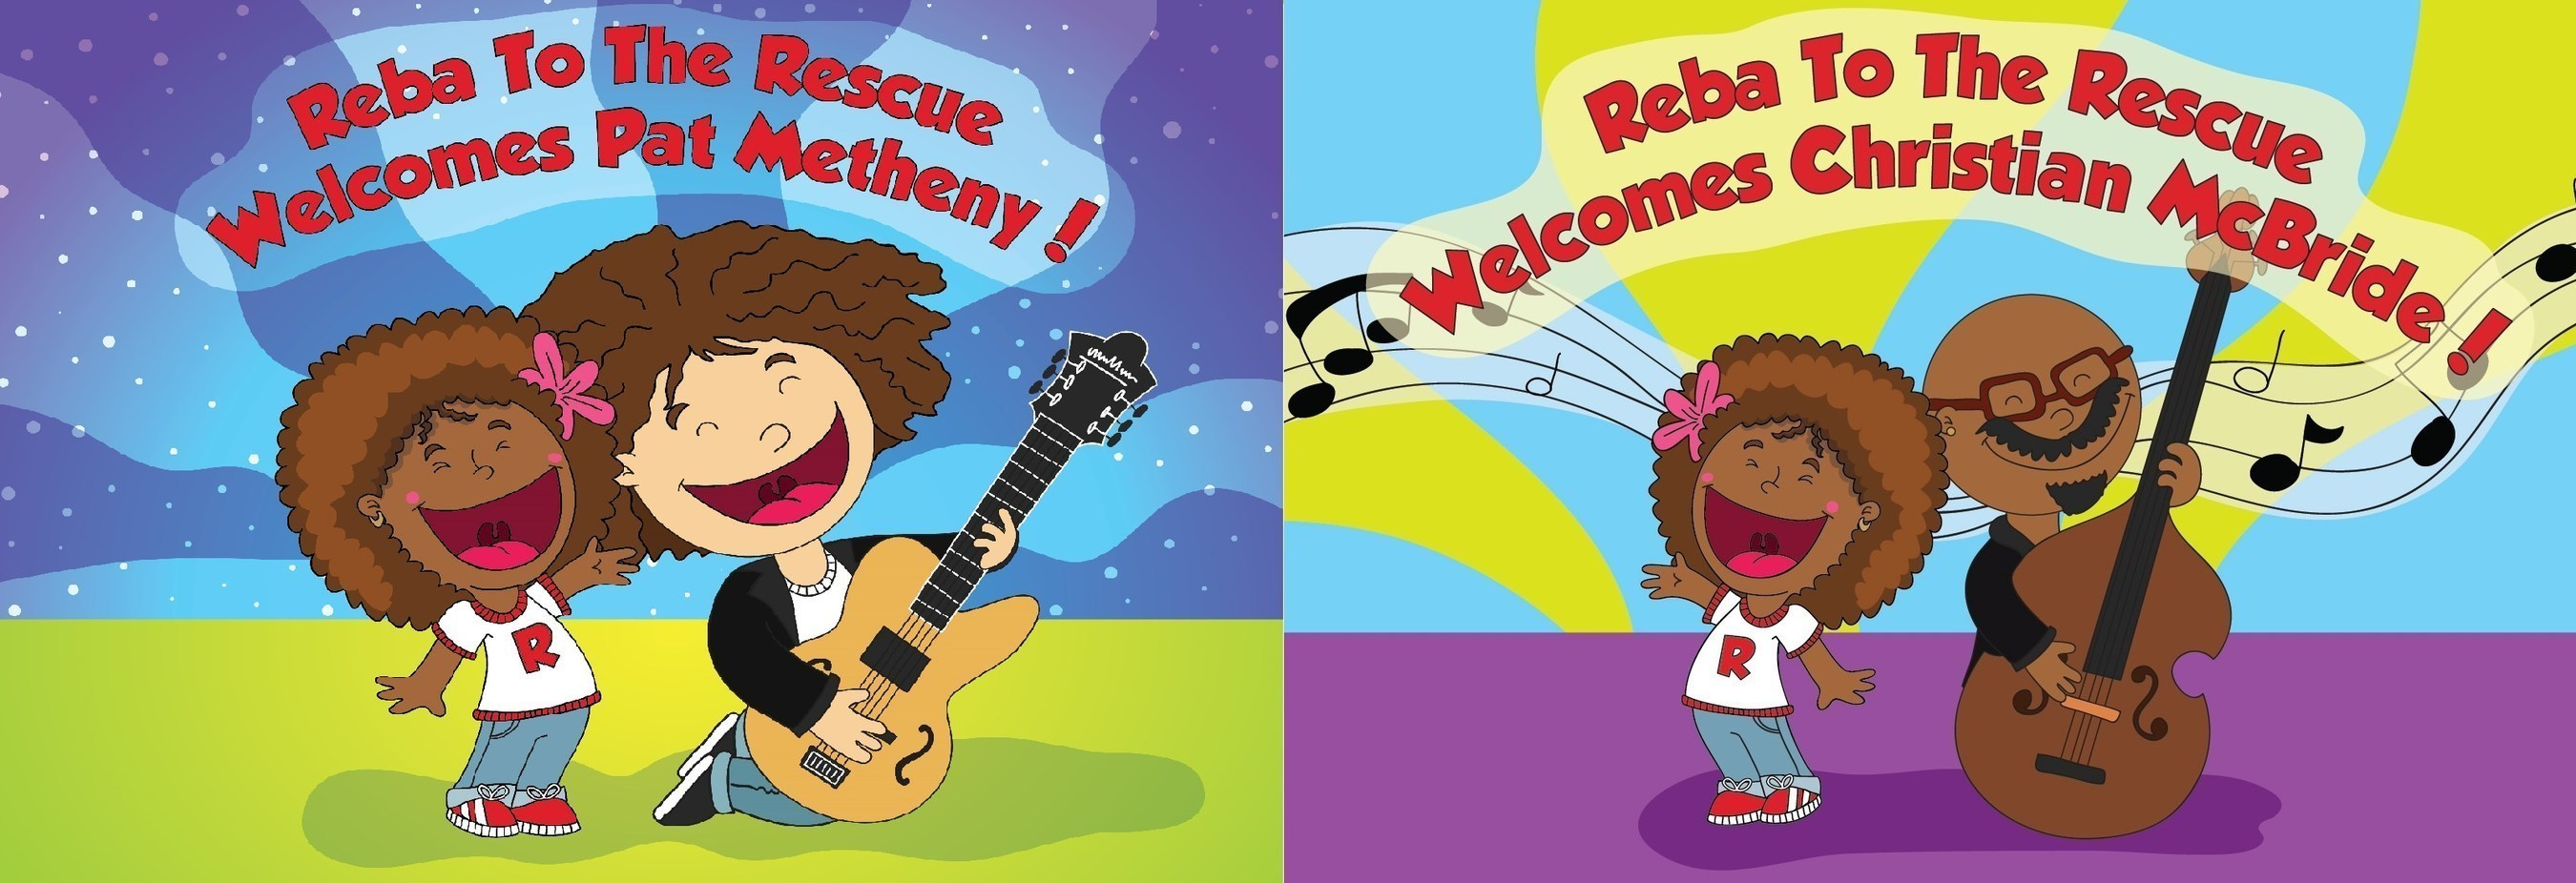 Pat Metheny and Christian McBride Join the Educational Venture 'Reba To The Rescue''